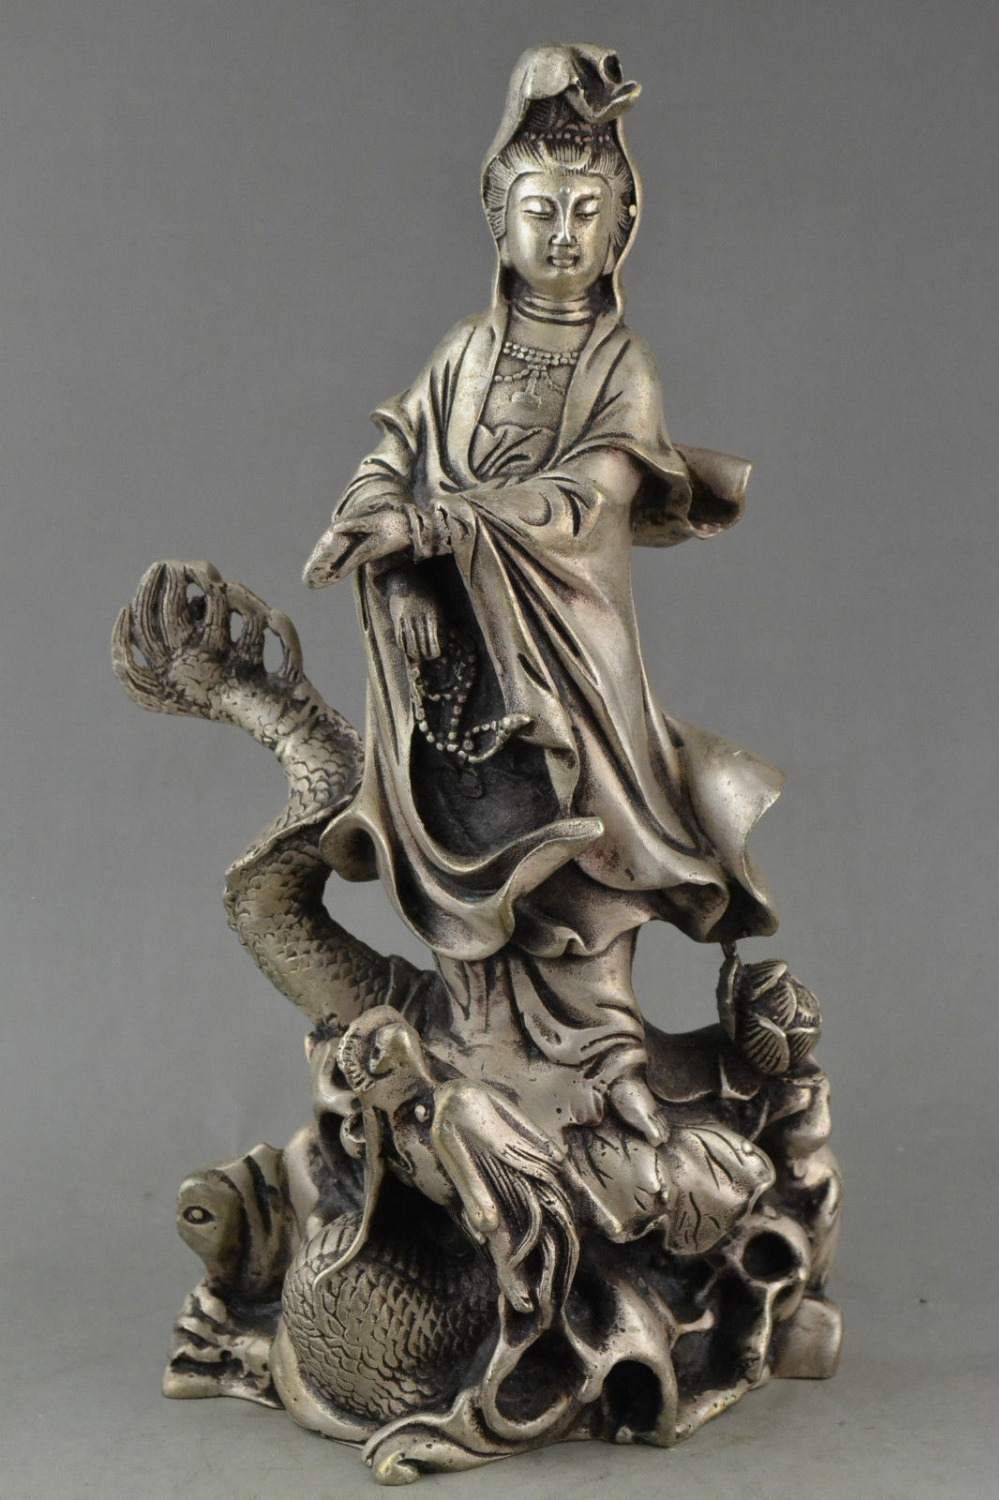 Collection of old China miao silver dragon carved guanyin bodhisattva buddha statue decoration metal handicraftCollection of old China miao silver dragon carved guanyin bodhisattva buddha statue decoration metal handicraft